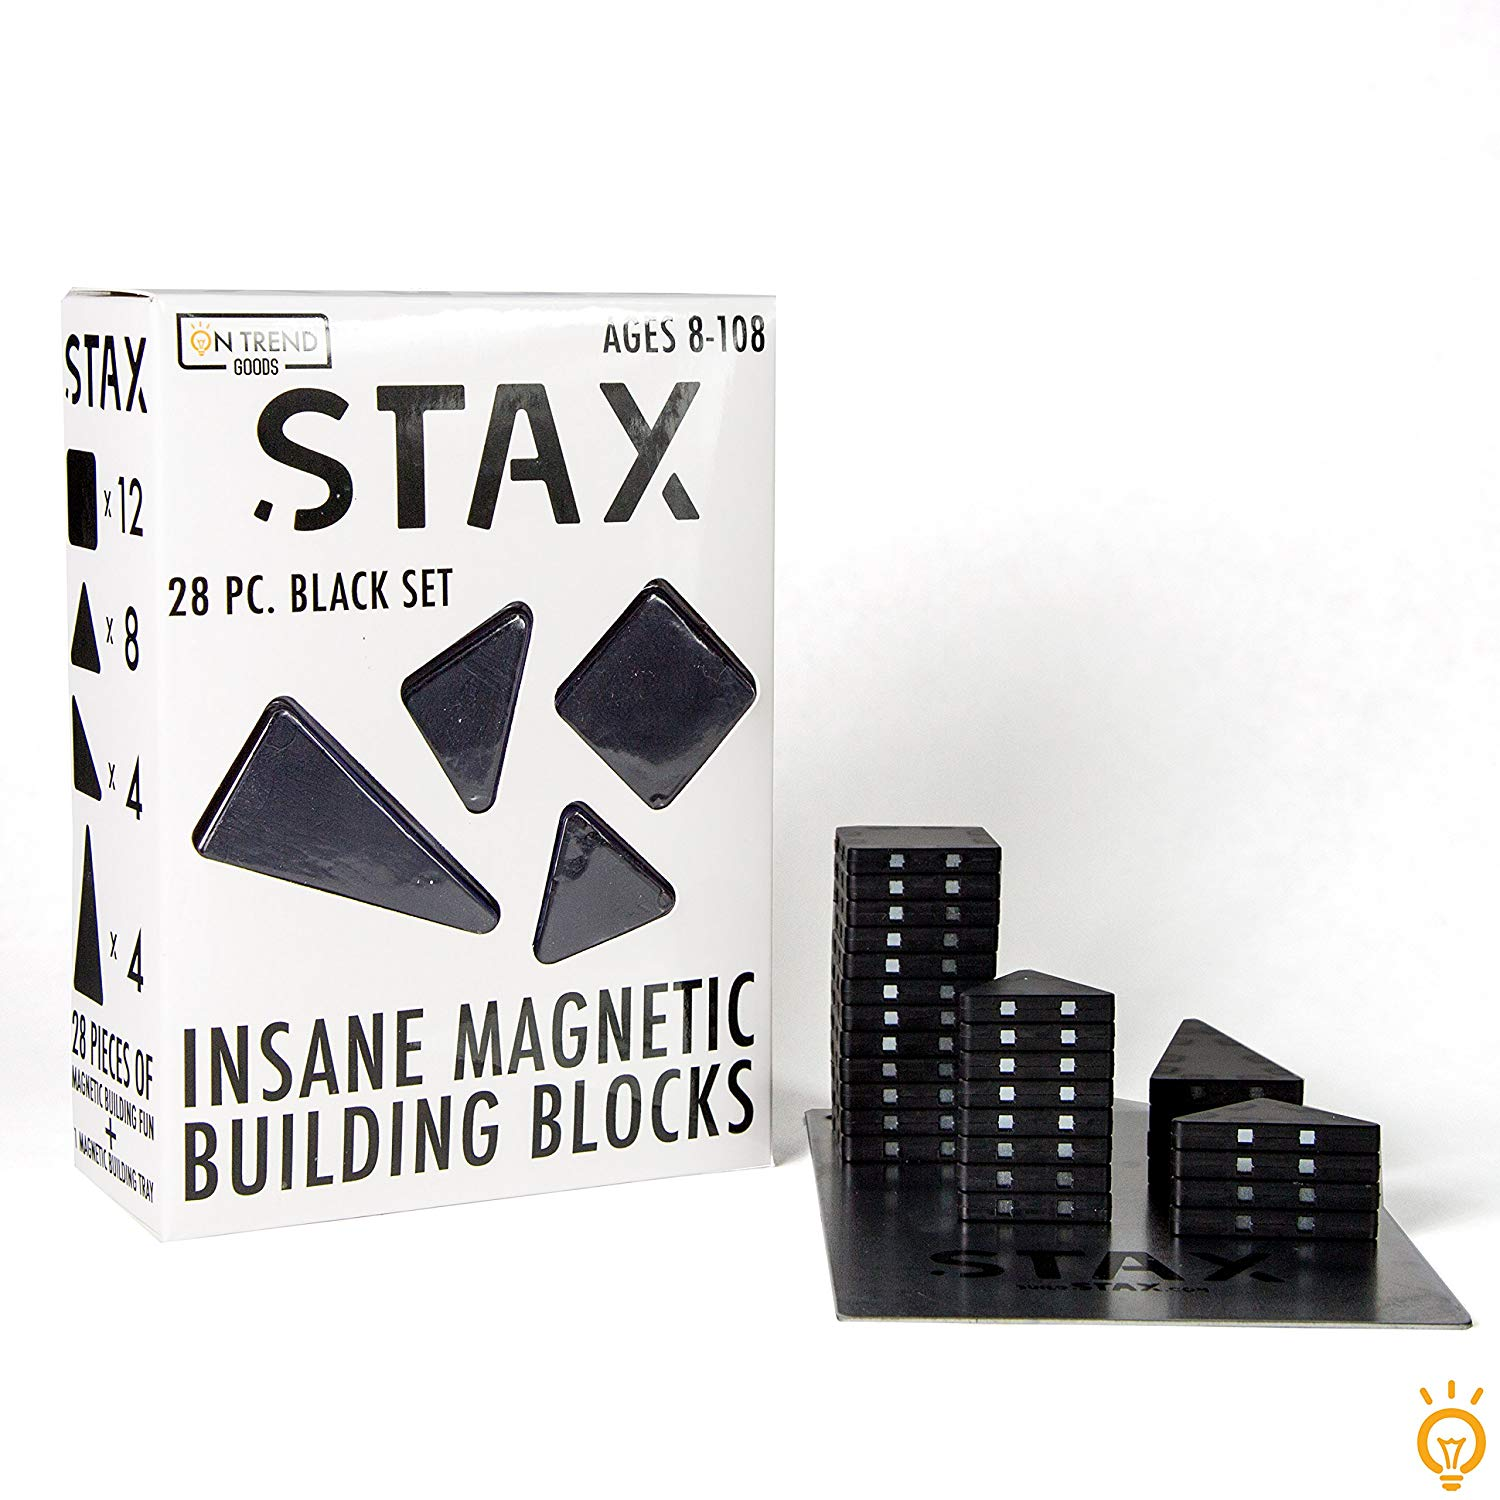 STAX 28pc Insane Magnetic Building Block Set (Blacks) by On Trend Goods